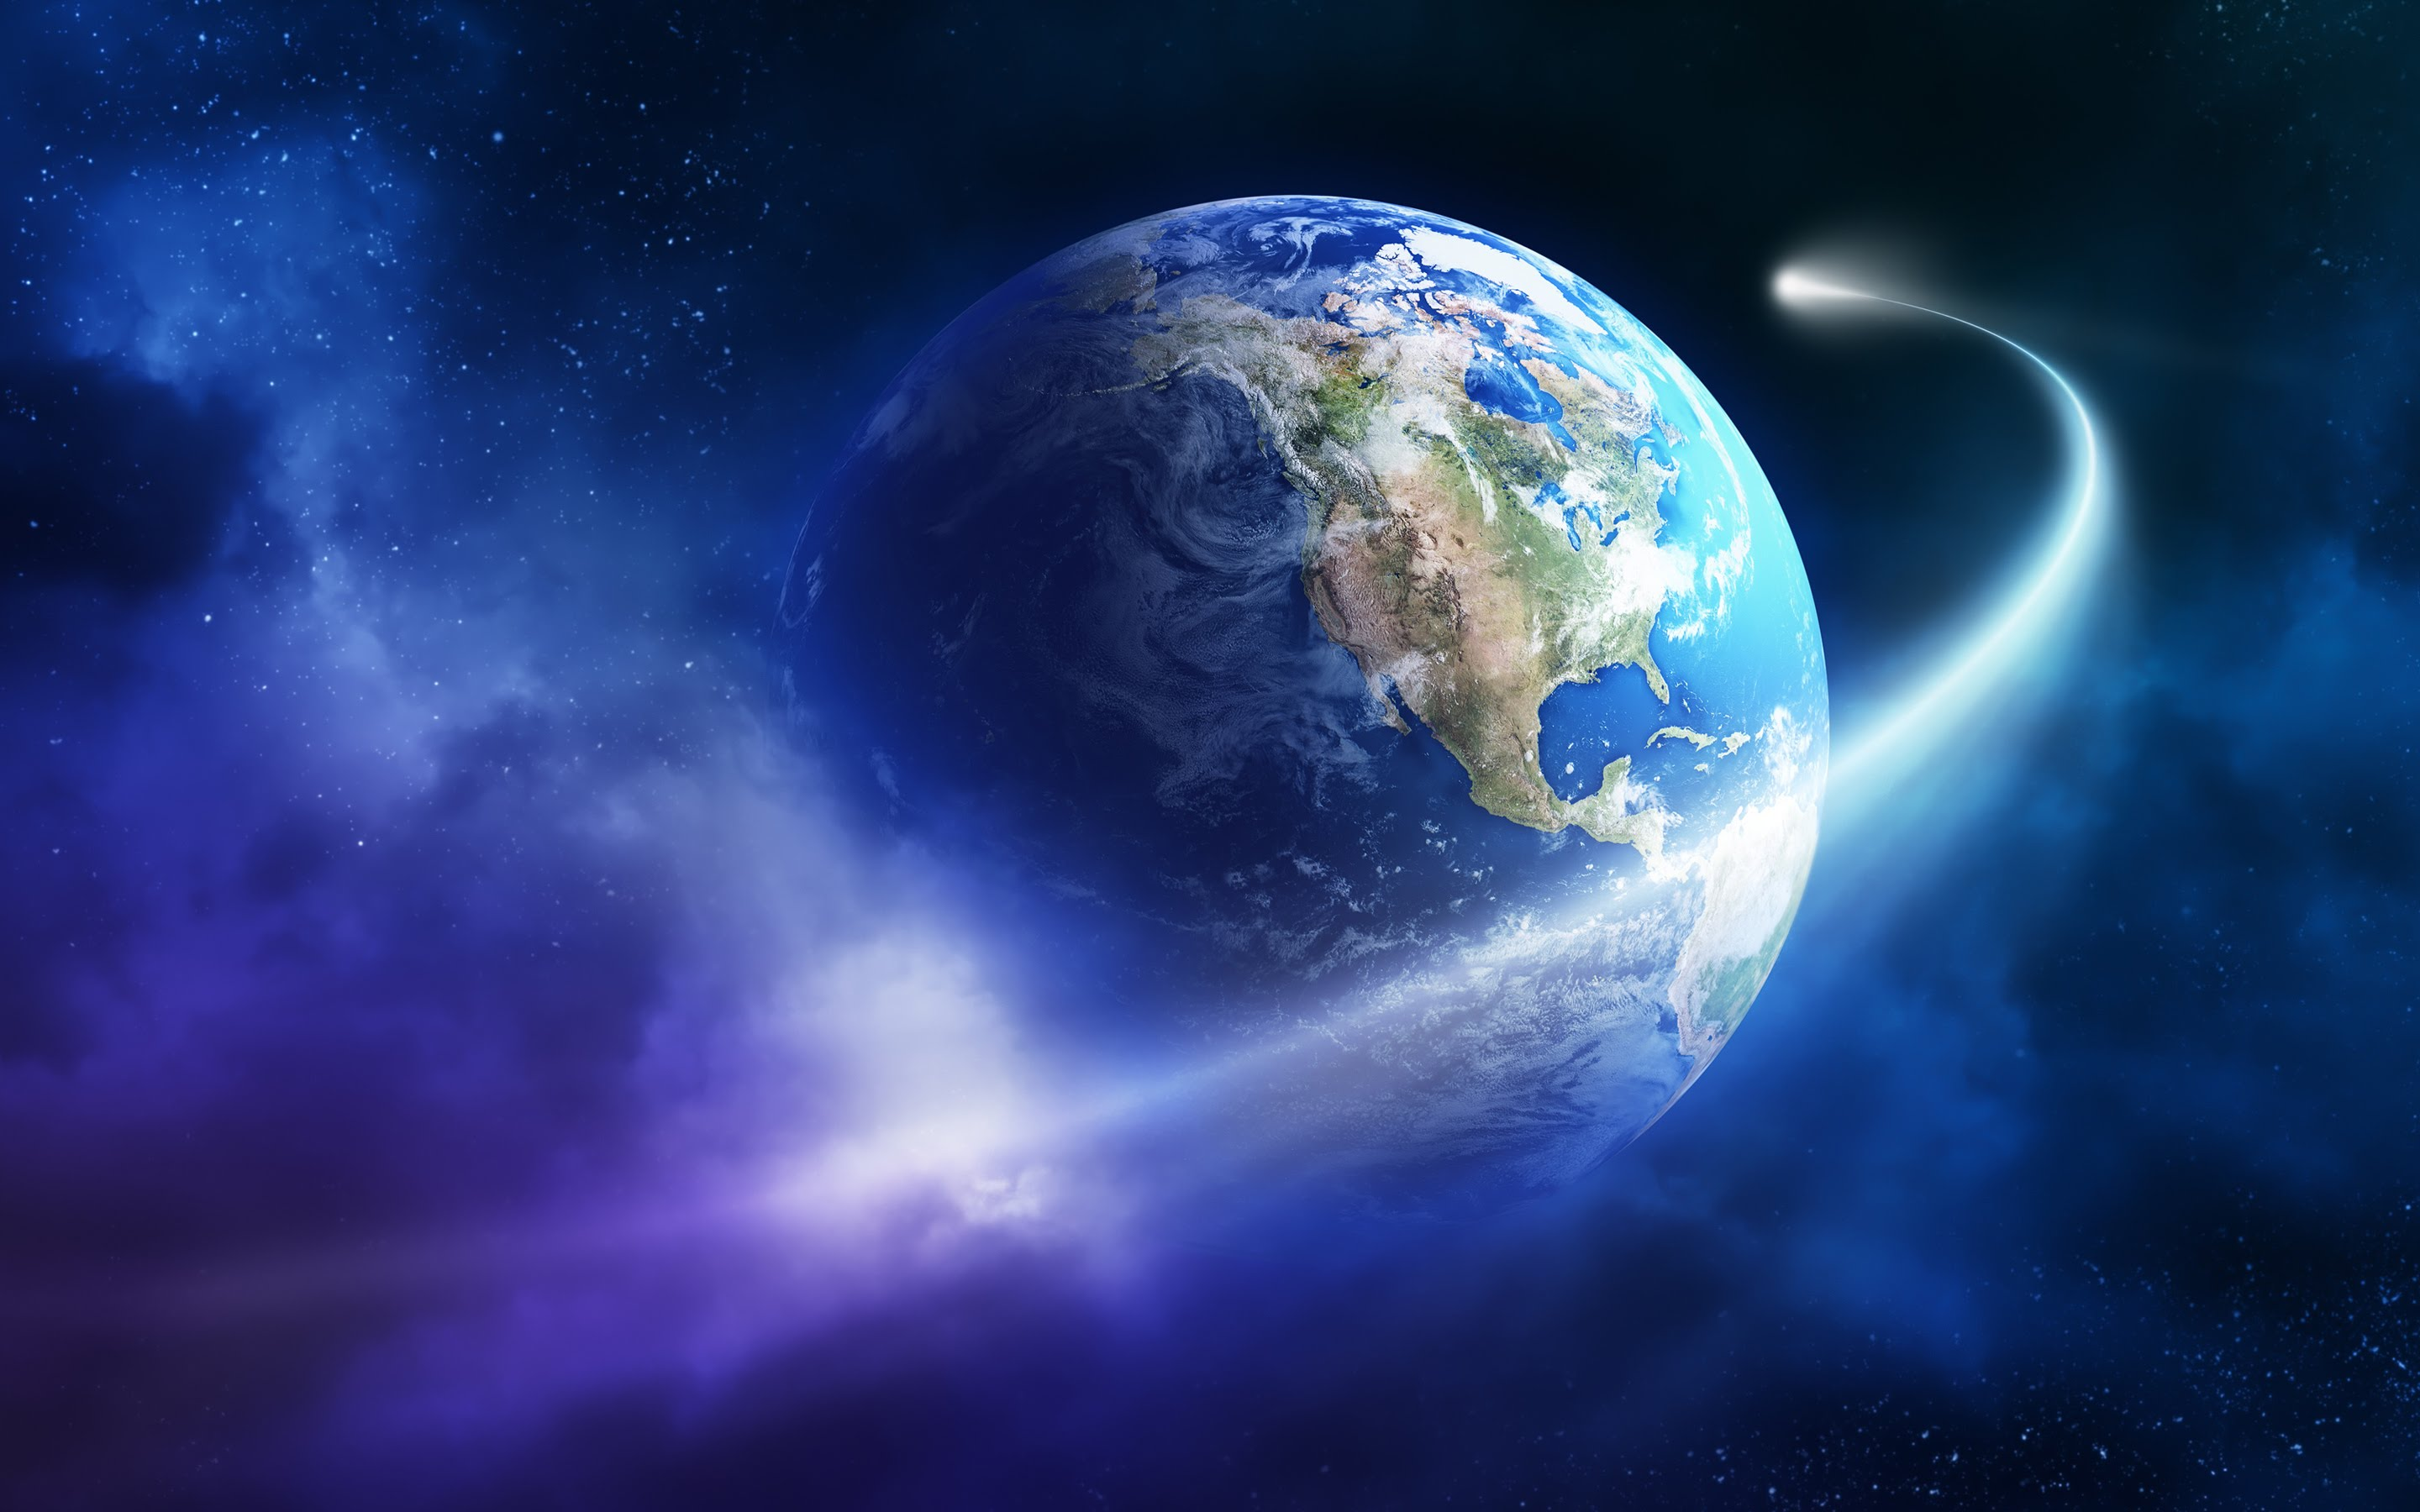 10 Amazing Facts About Planet Earth You May Not Know